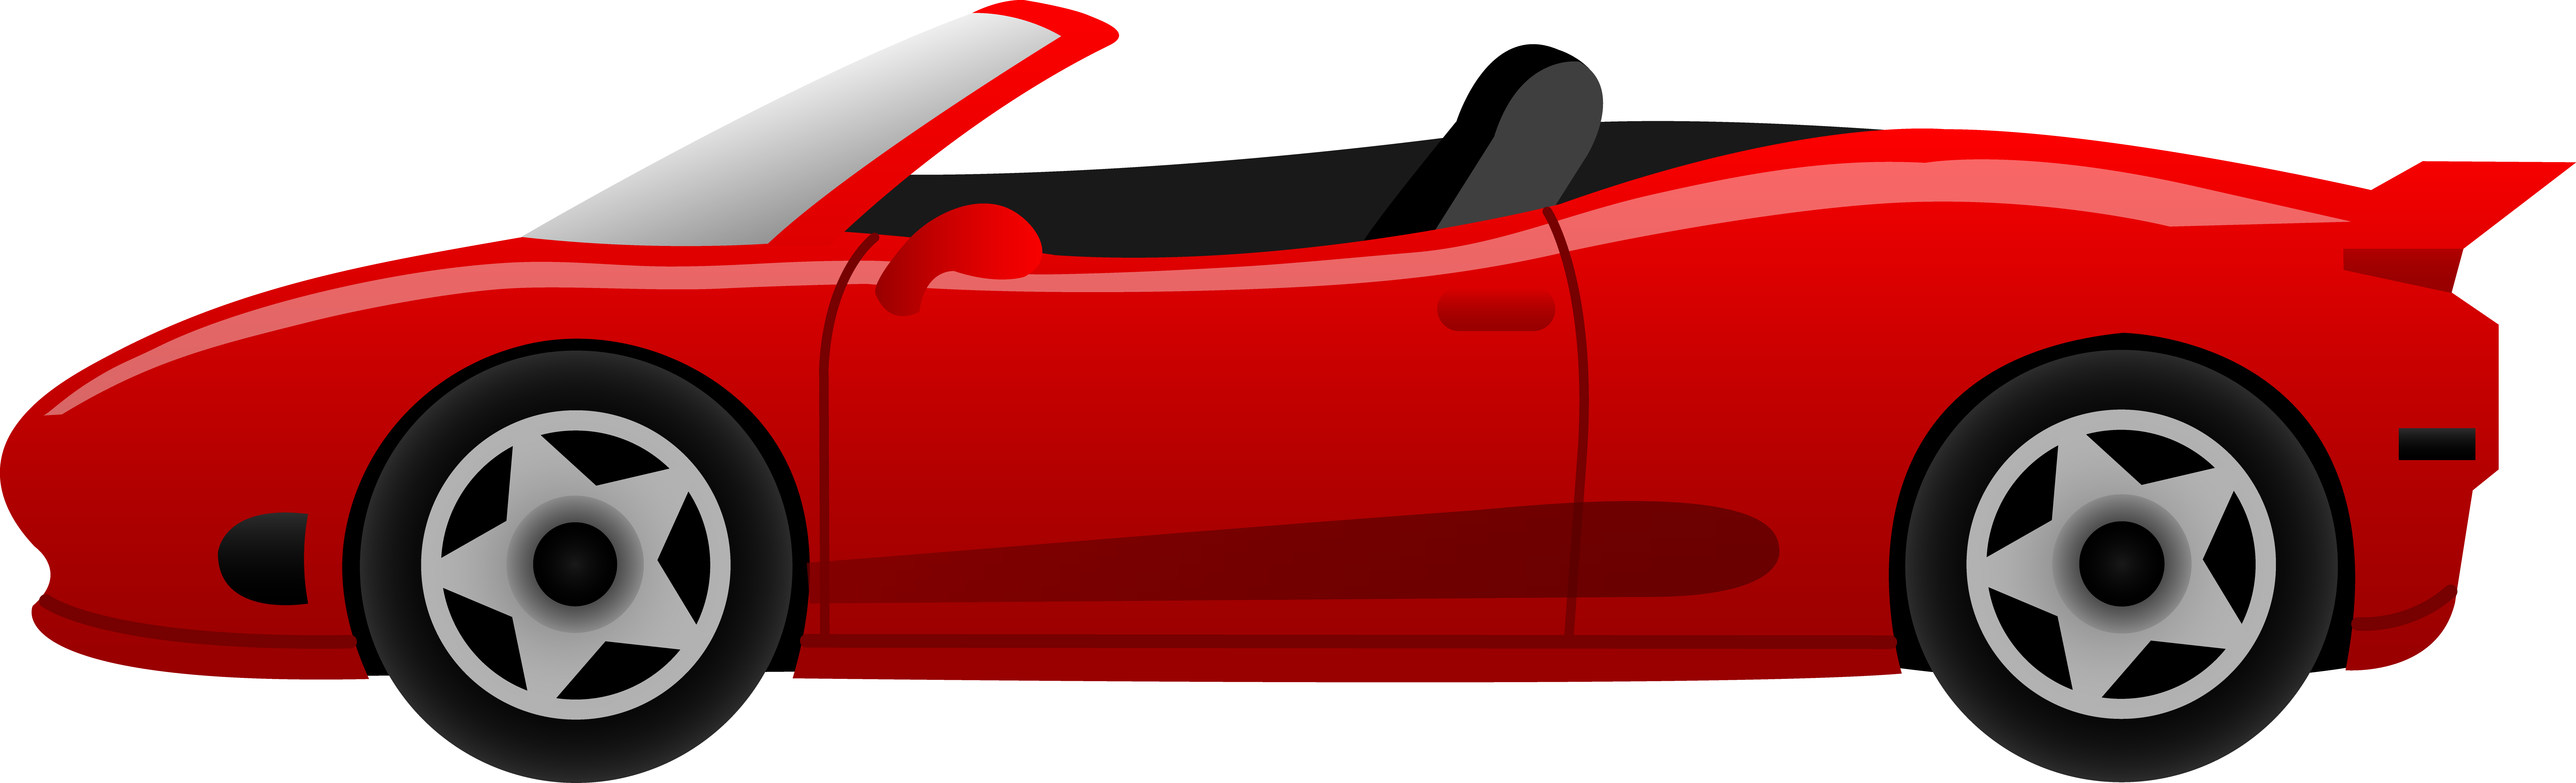 7863x2391 Clipart Of Car